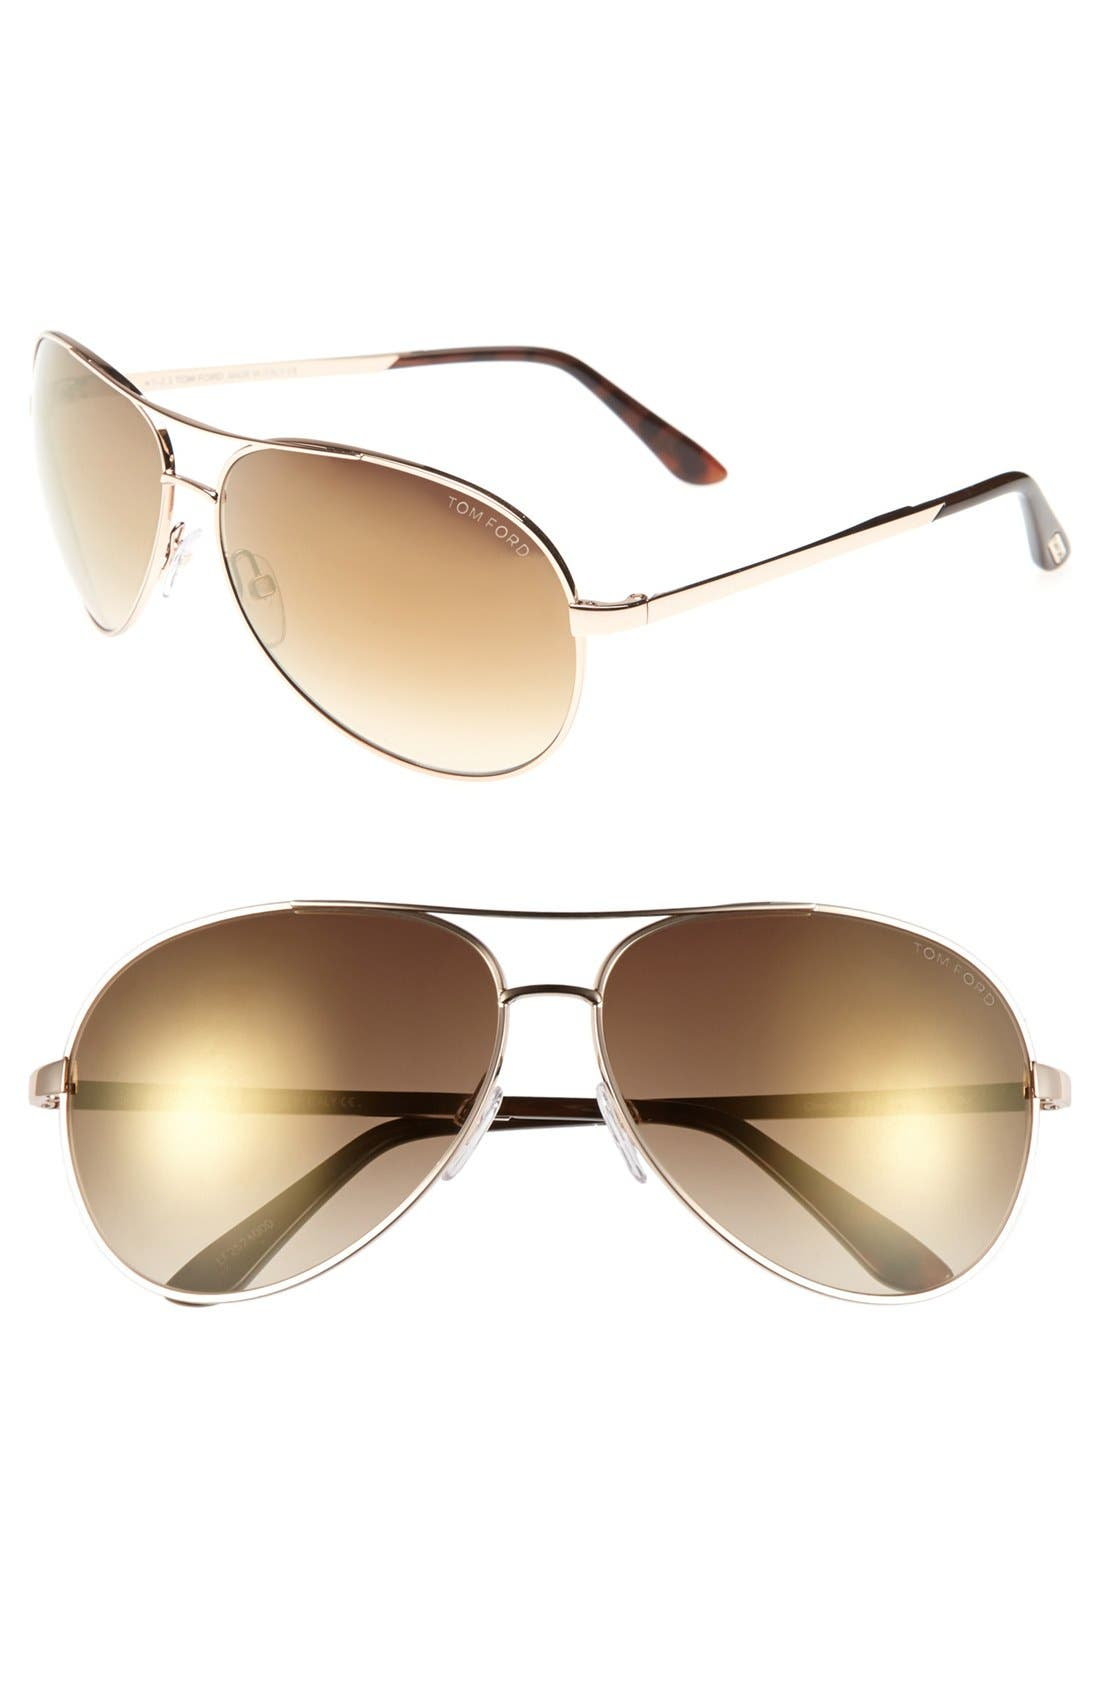 Main Image - Tom Ford 'Charles' 62mm Sunglasses